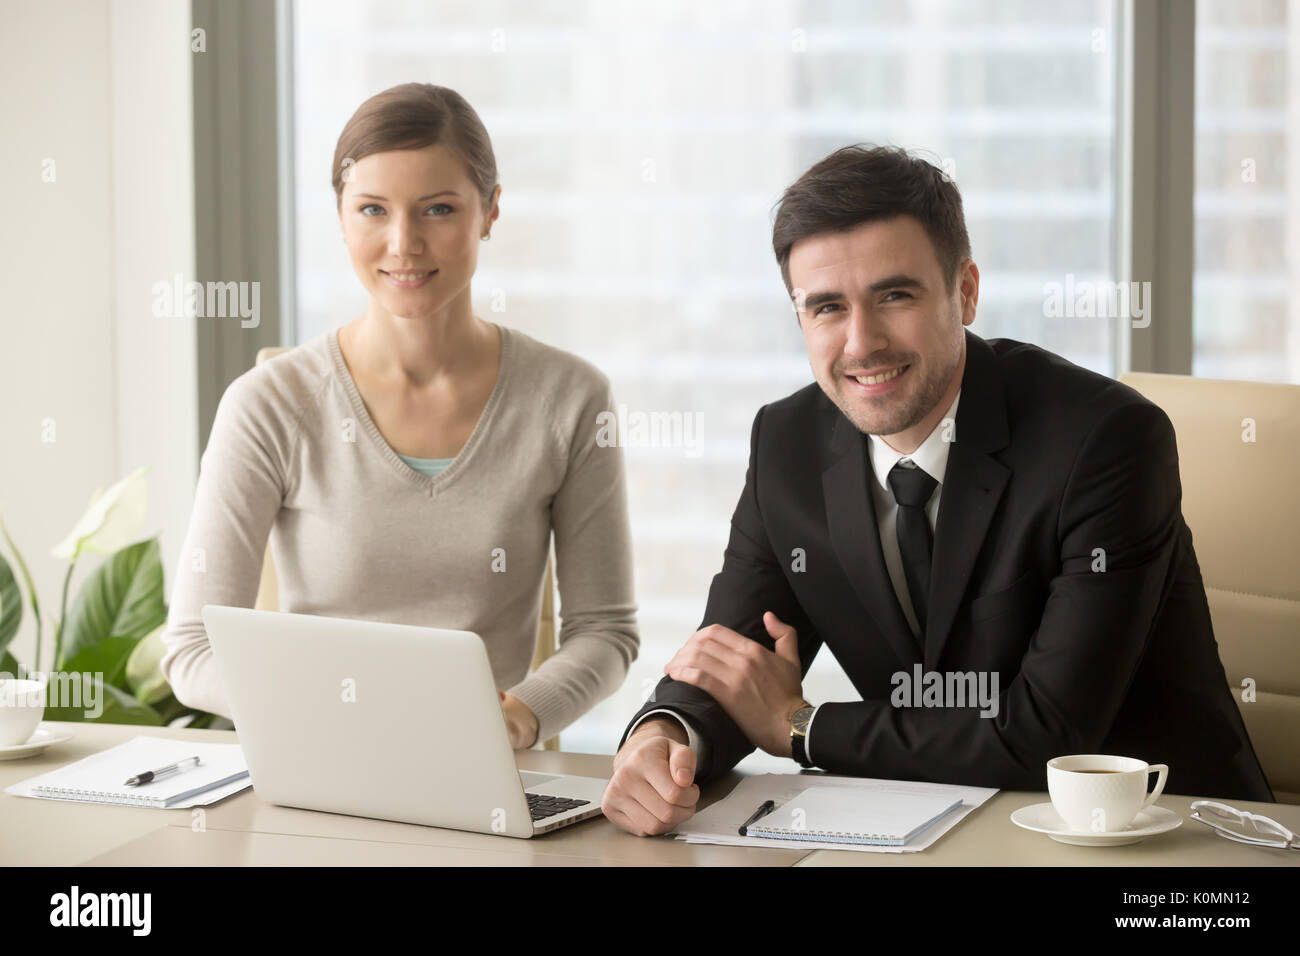 Smiling businessman and businesswoman looking at camera, busines - Stock Image